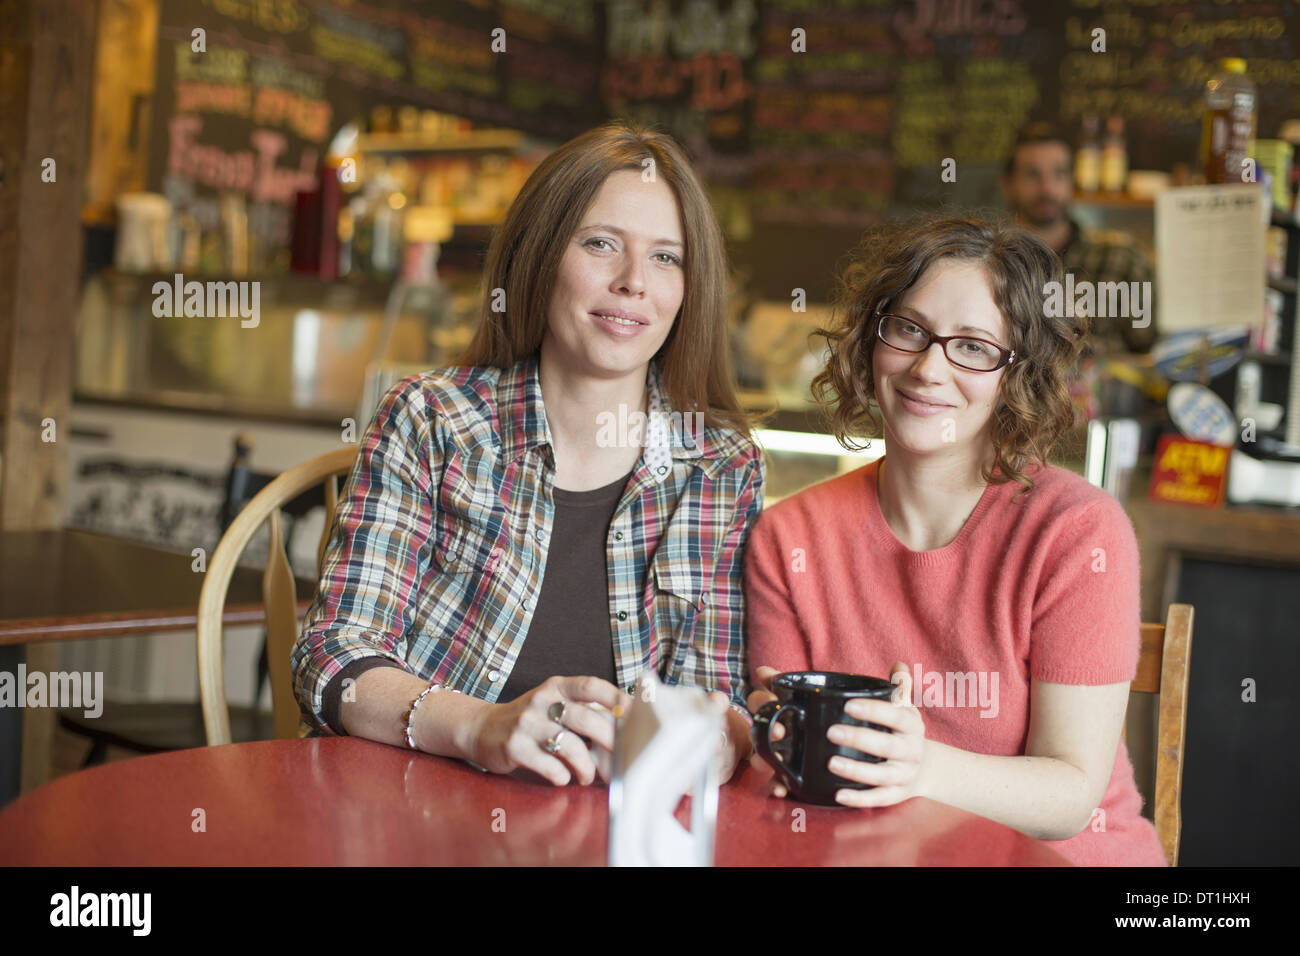 A coffee shop and cafe in High Falls called The Last Bite Two women sitting at a table - Stock Image